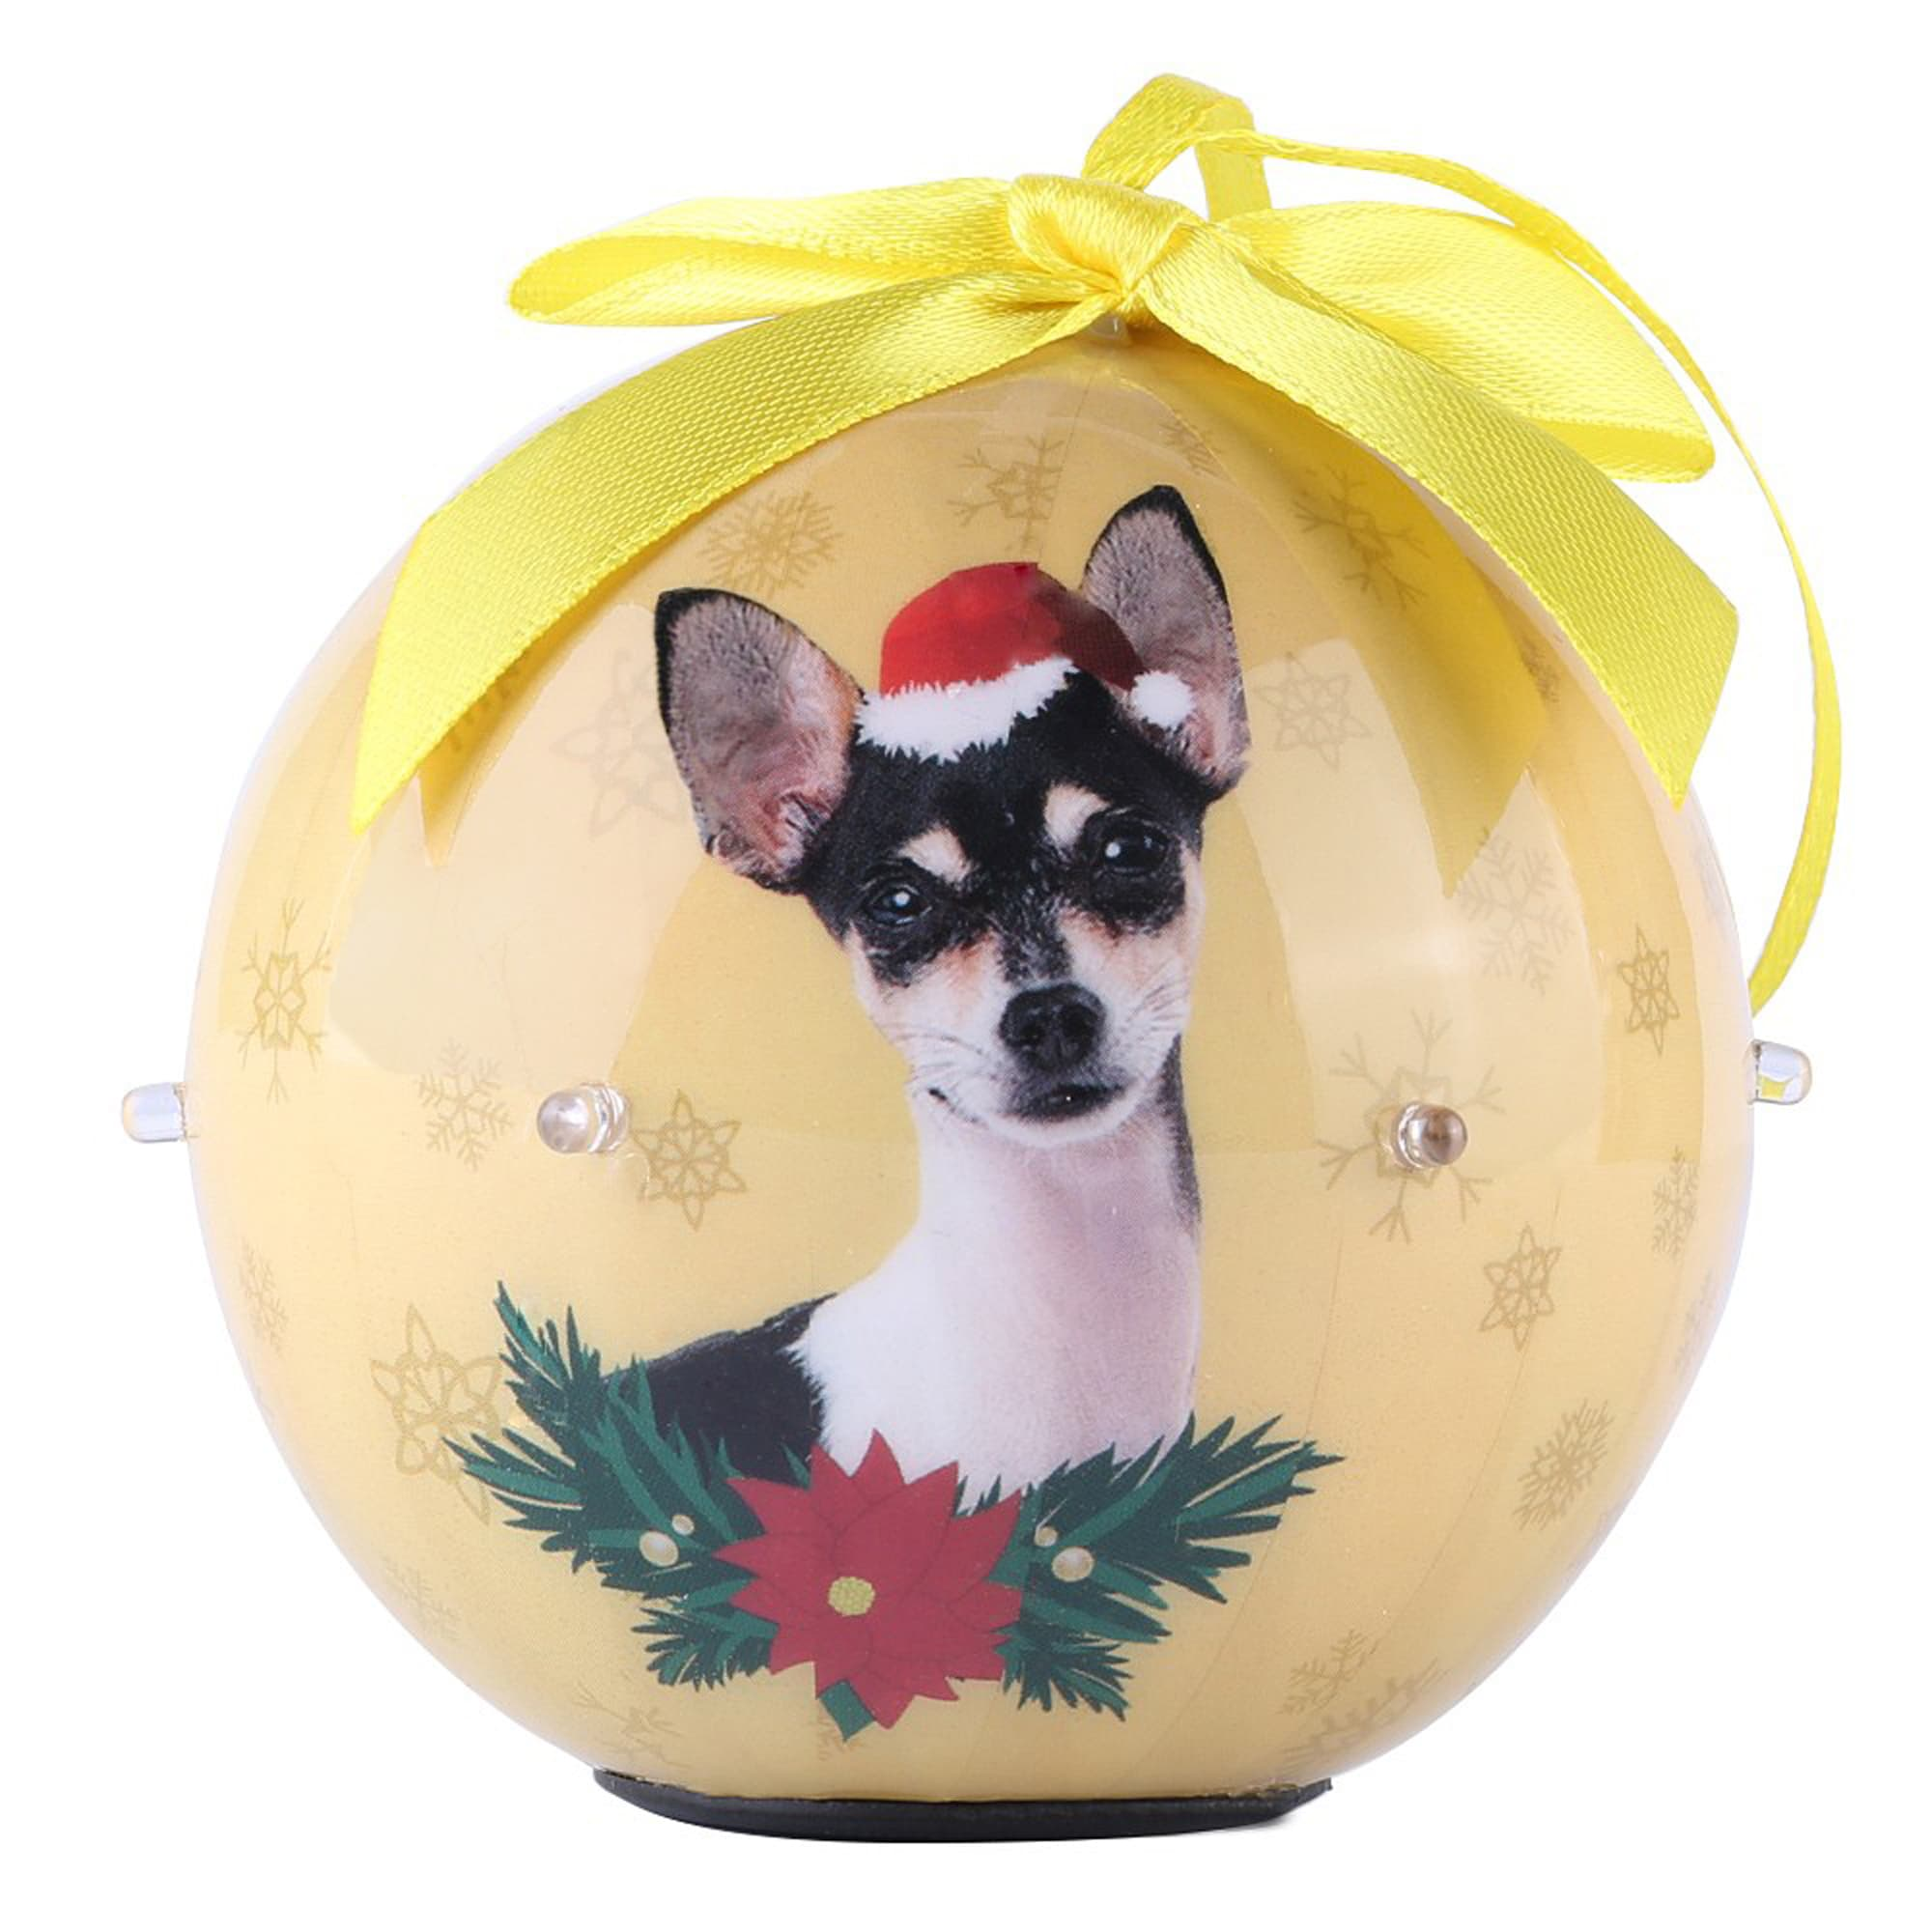 CueCuePet Chihuahua Dog Collection Twinkling Lights Christmas Ball Ornament, Medium, Gold